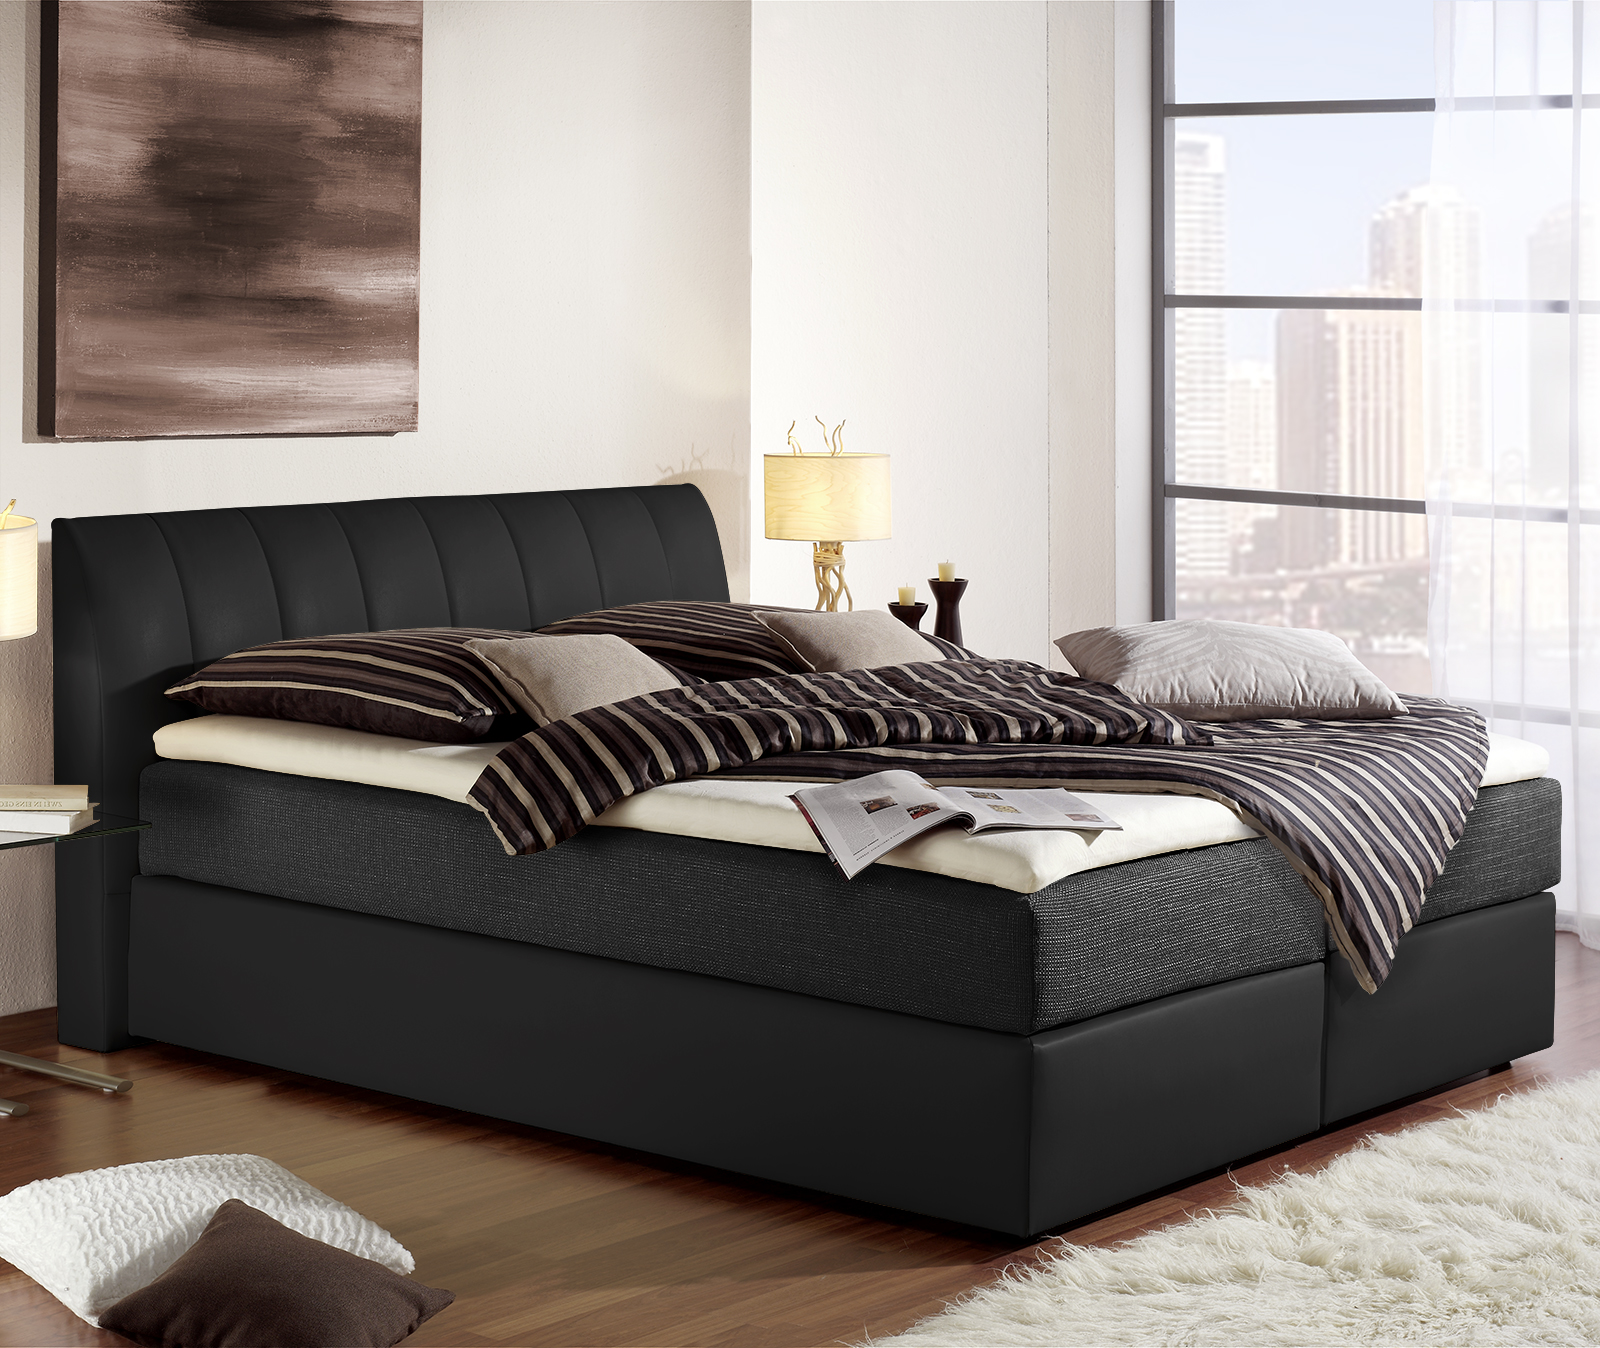 bett mit spring box und kunstlederbezug boxspringbett sydney. Black Bedroom Furniture Sets. Home Design Ideas